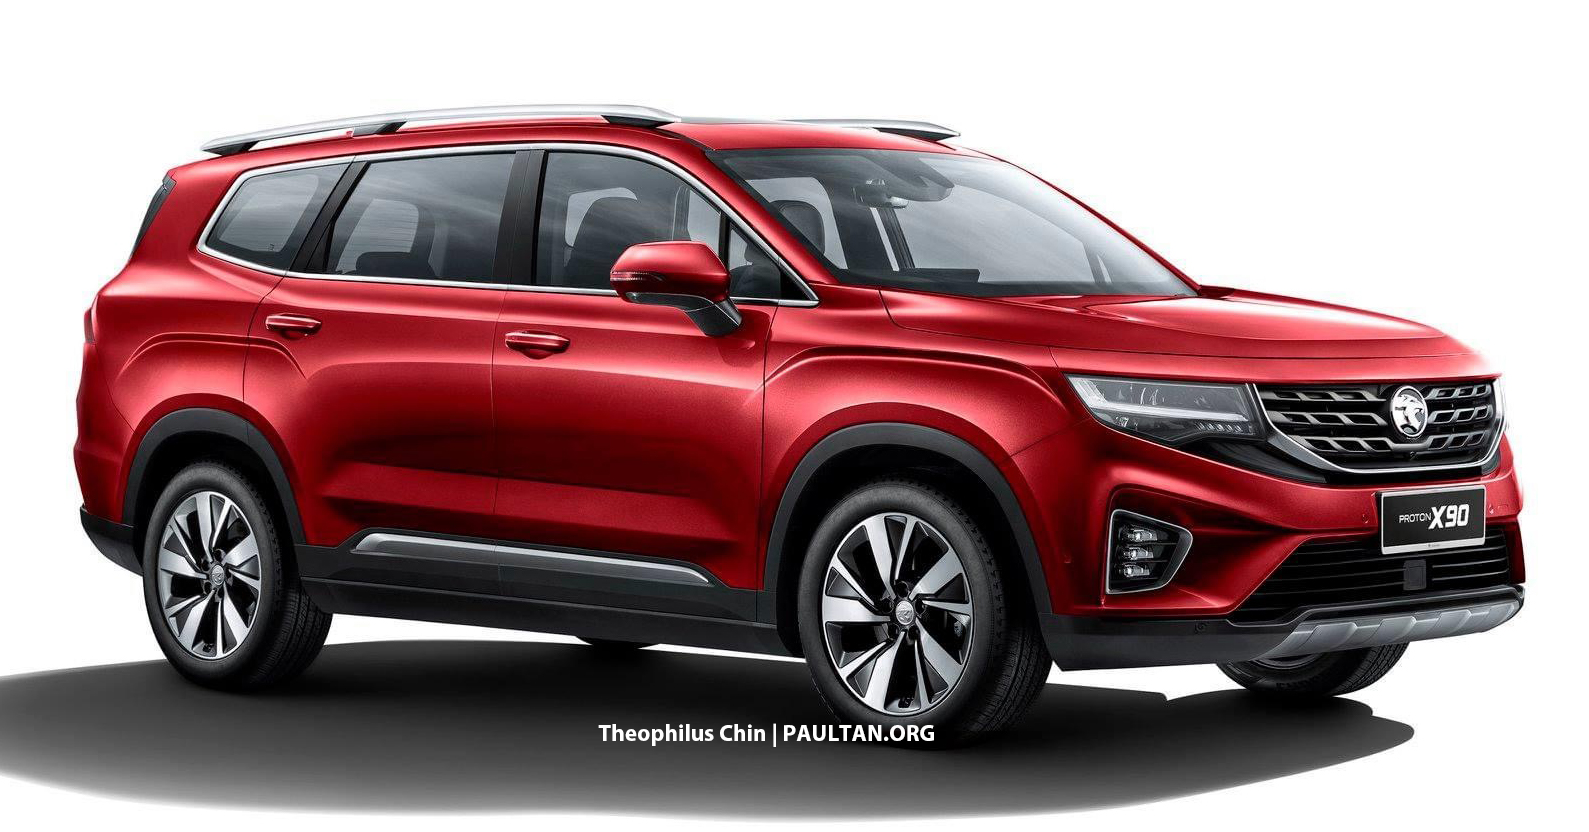 Proton X90 7 Seat Suv Based On Geely Haoyue Vx11 Would You Choose This Over The Geely Jiaji Vf11 Mpv Paultan Org